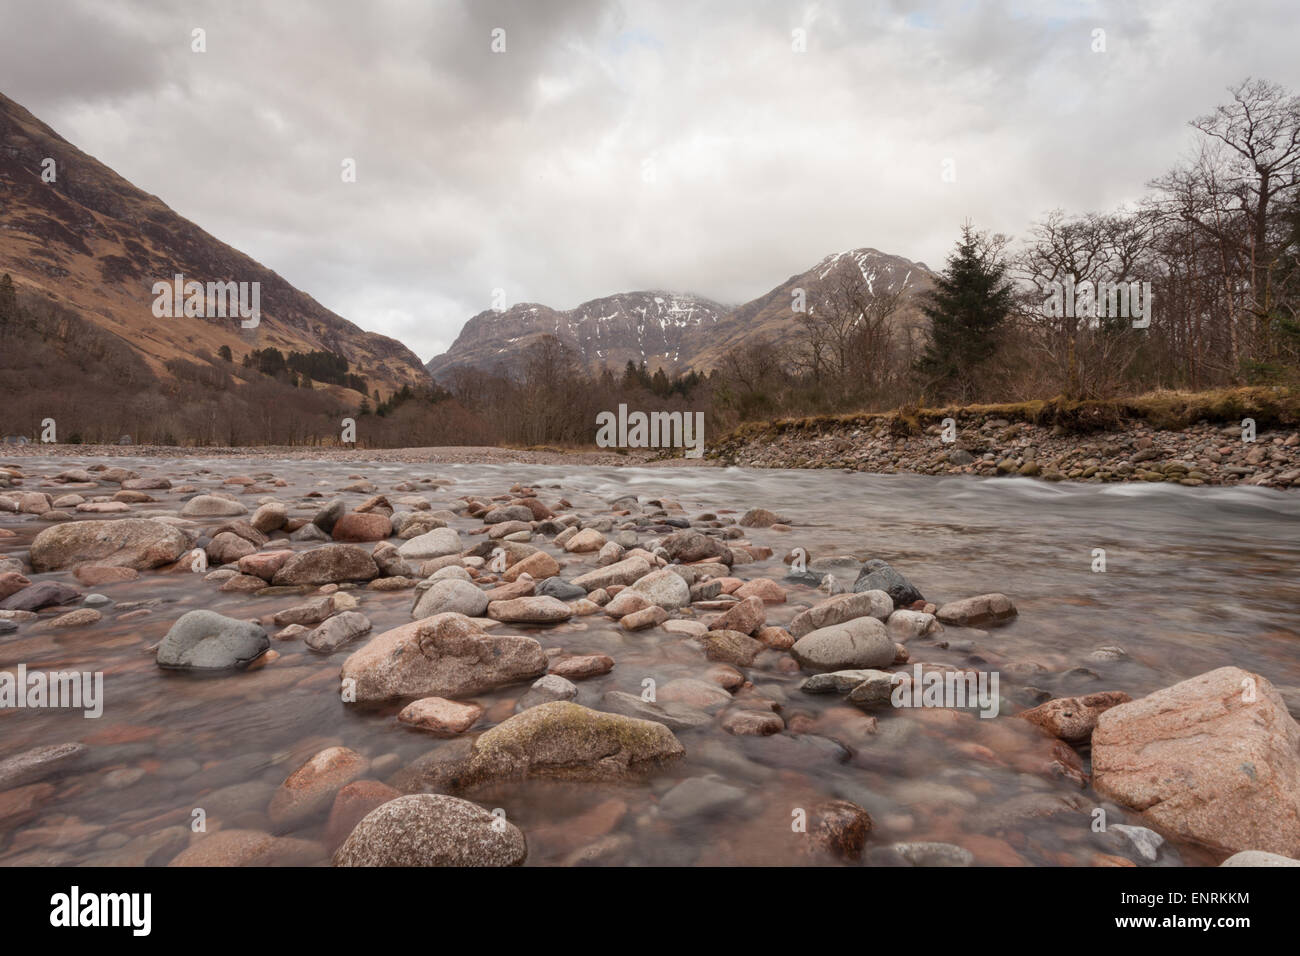 Scenic photo of Scottish Highlands, with a river or stream and stones in the foreground. - Stock Image